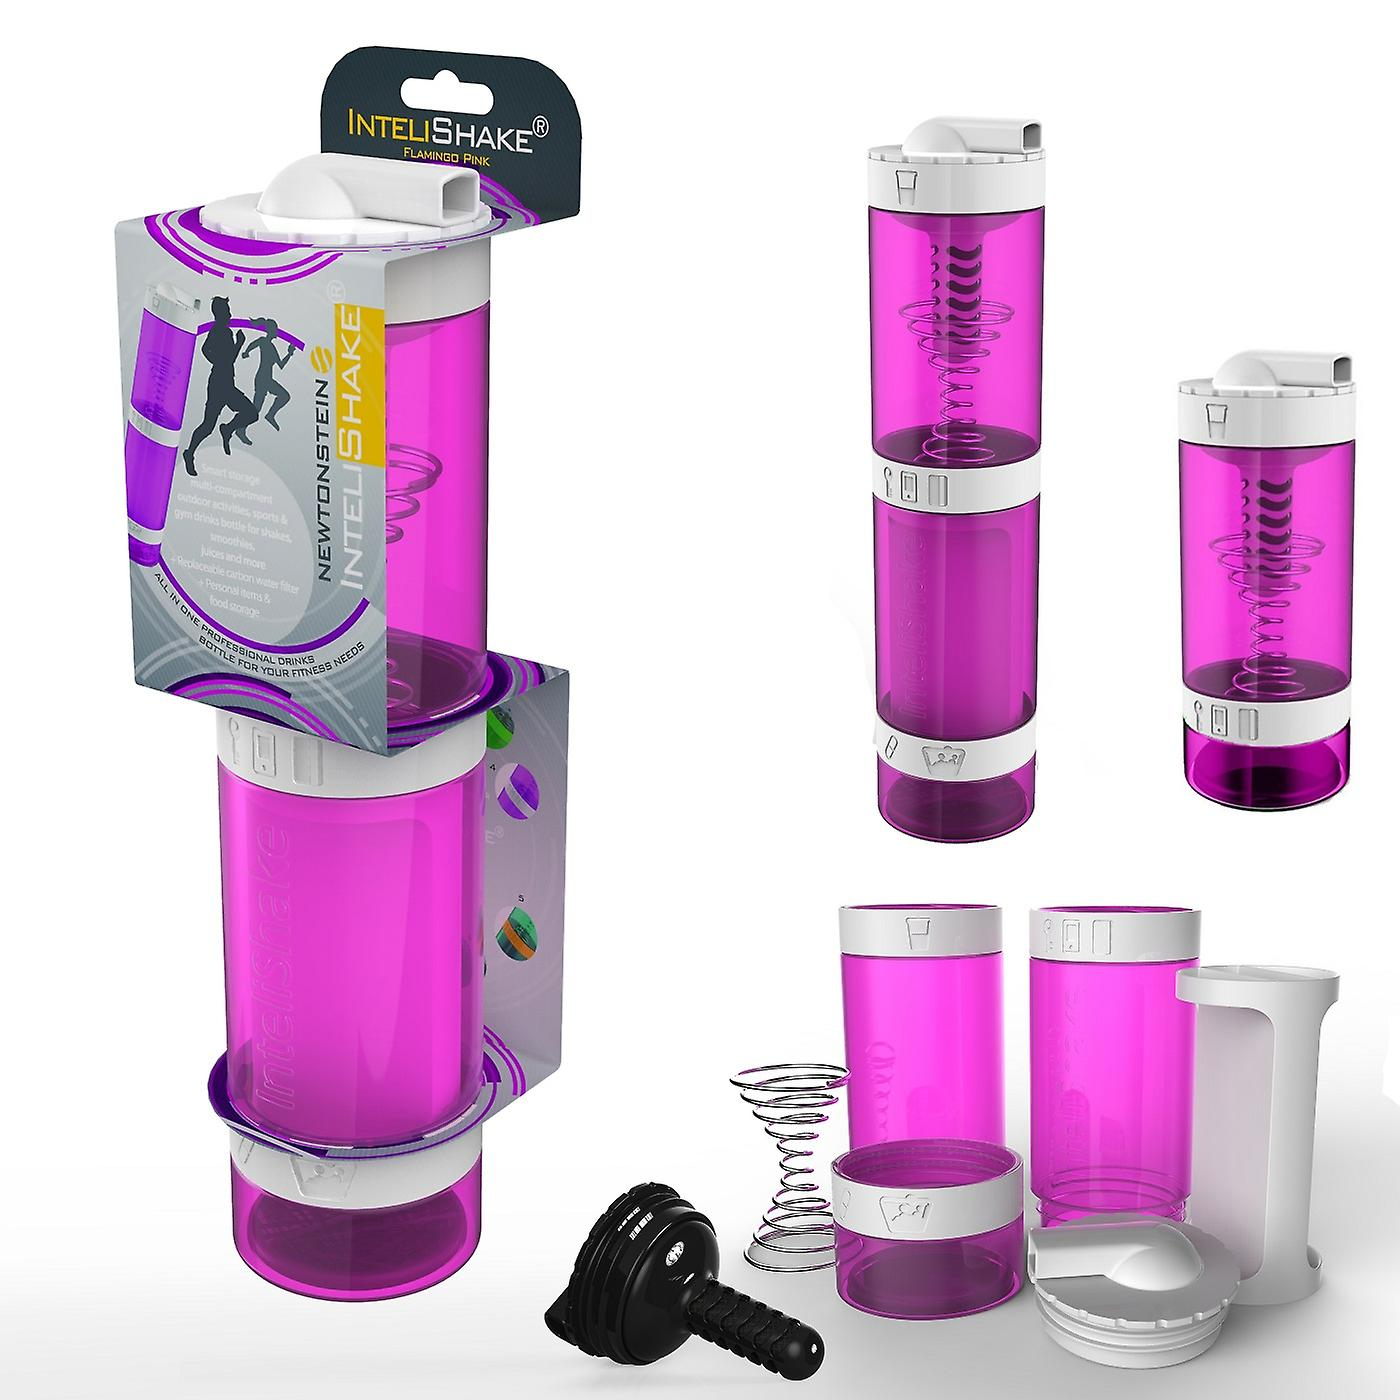 Intelishake Flamingo Pink - Shaker Bottle Multi-Compartment Protein/Workout/Juice with Water Carbon Filter for Sports Exercise & Gym